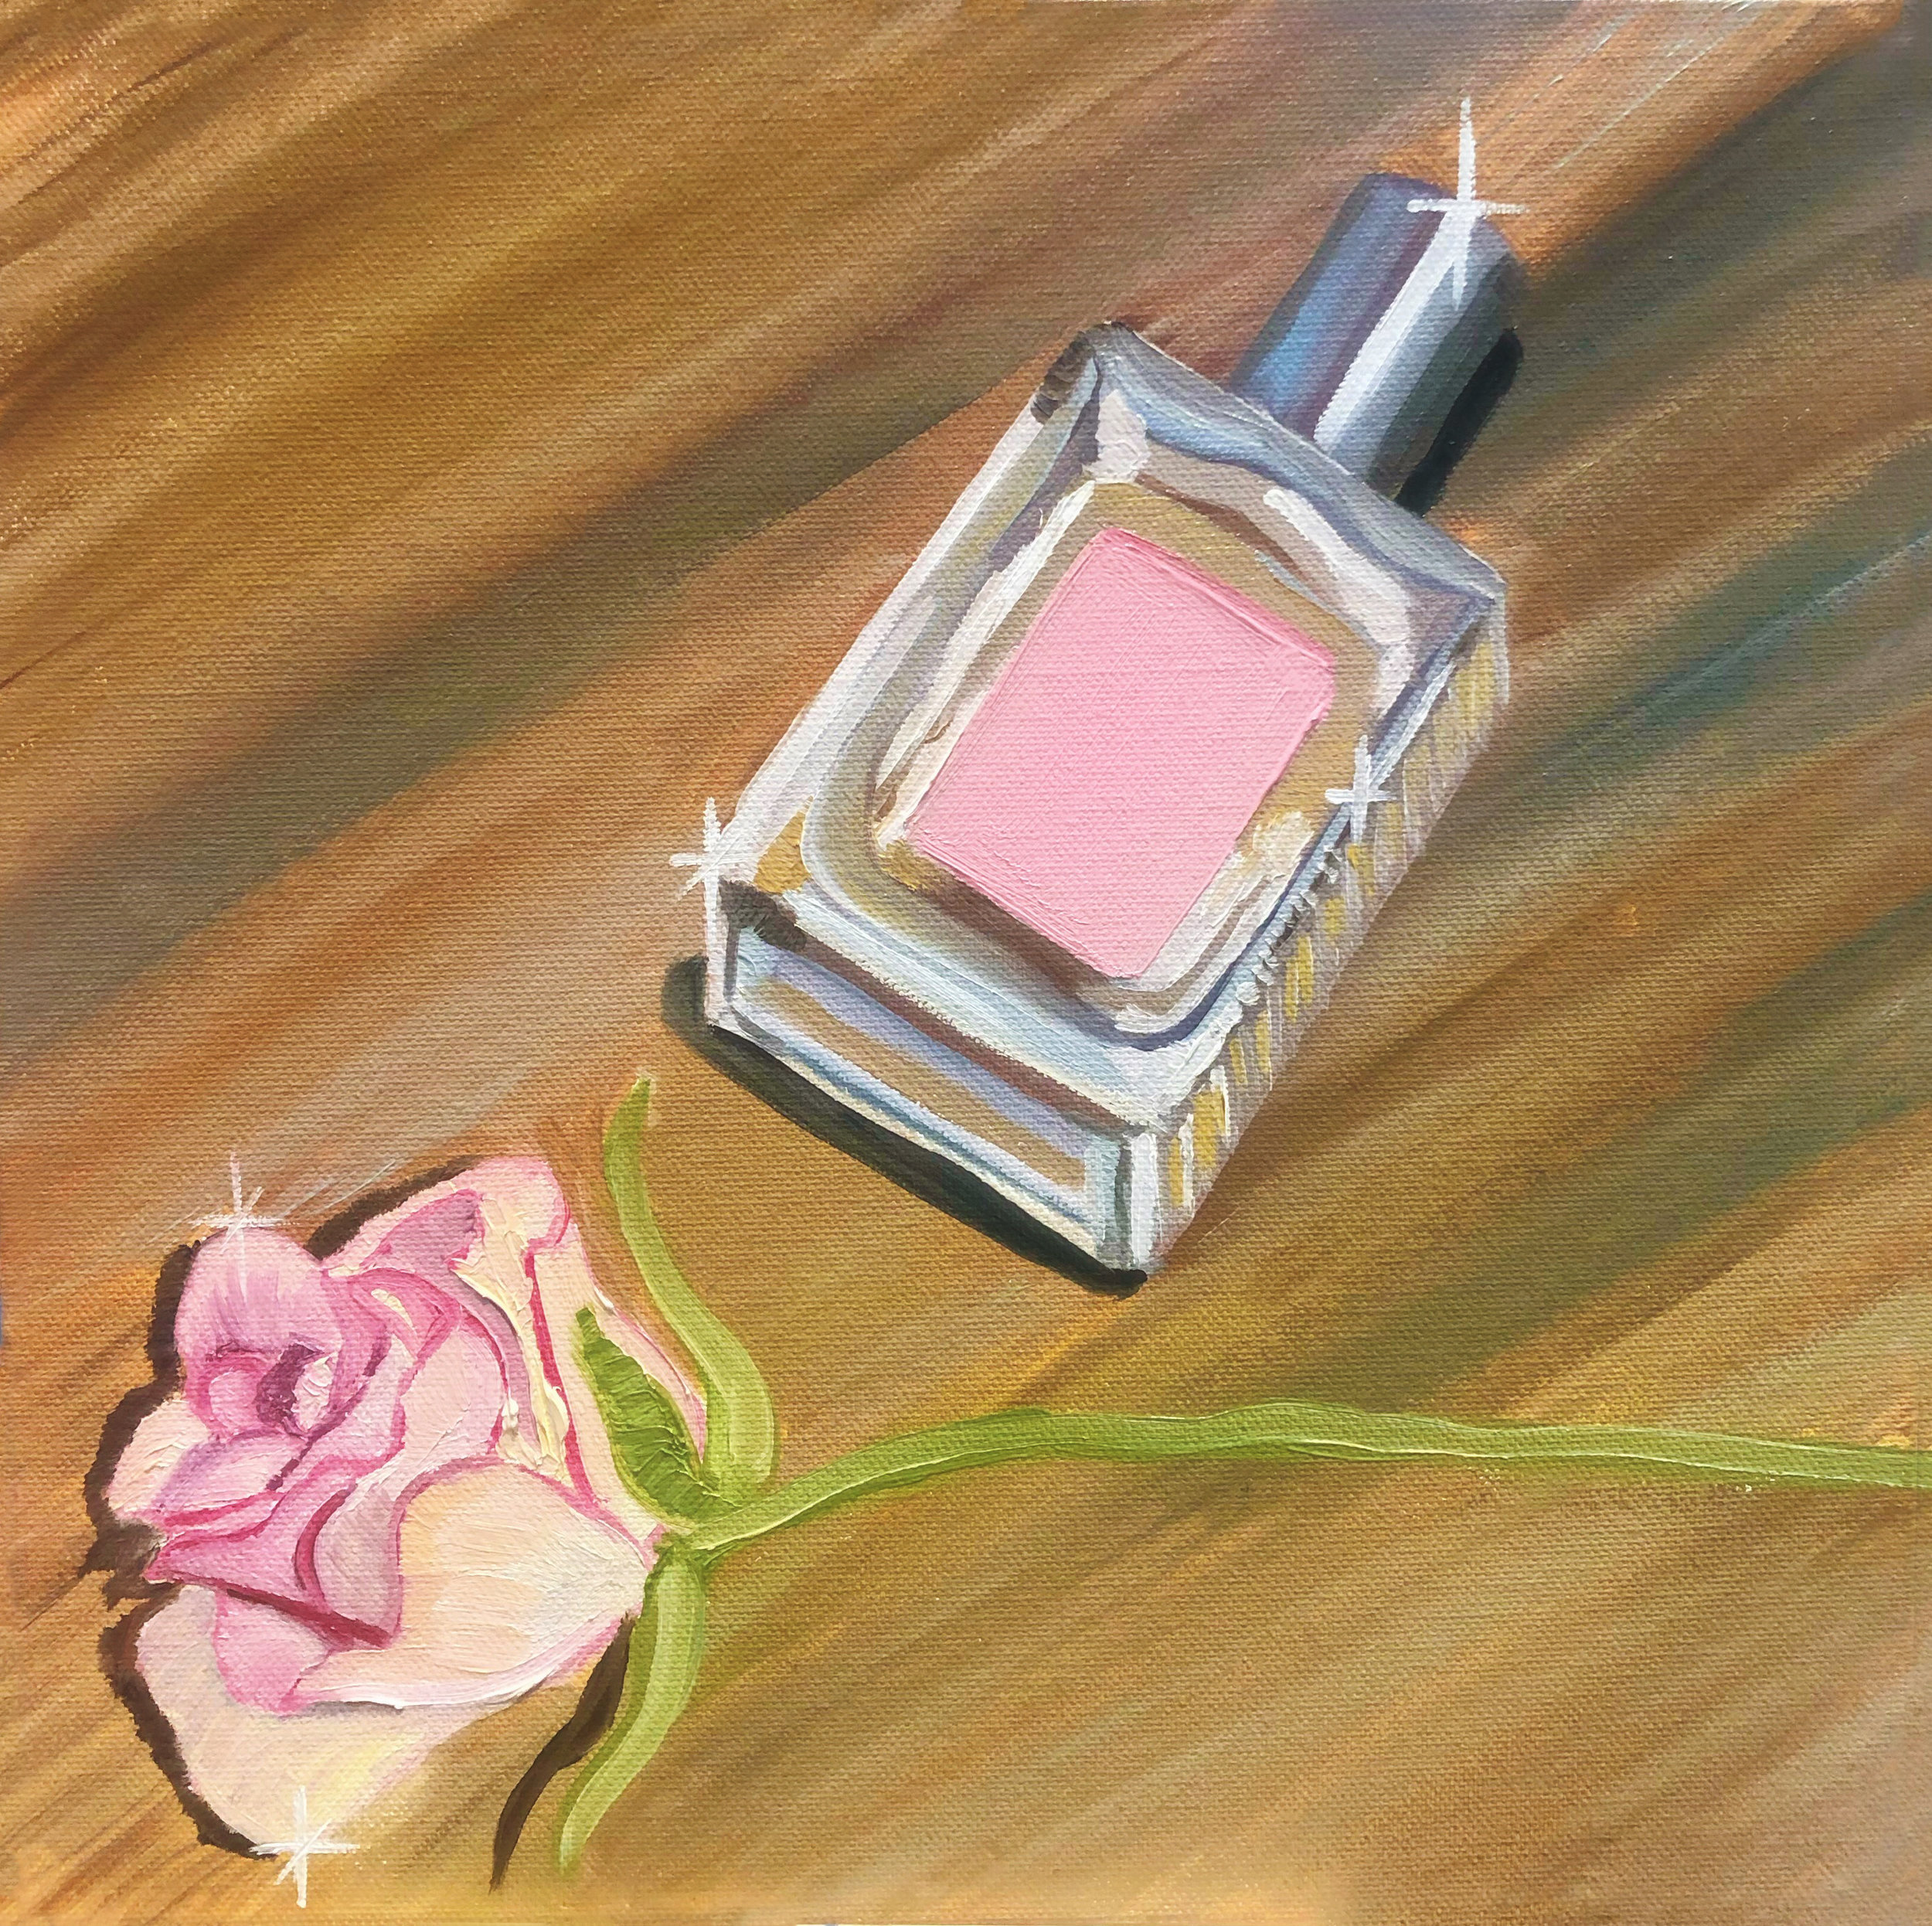 katrina-eugenia-philosophy-skincare-love-philosophy-amazing-grace-amazing-grace-ballet-rose-live-painting-oil-painting96.JPG